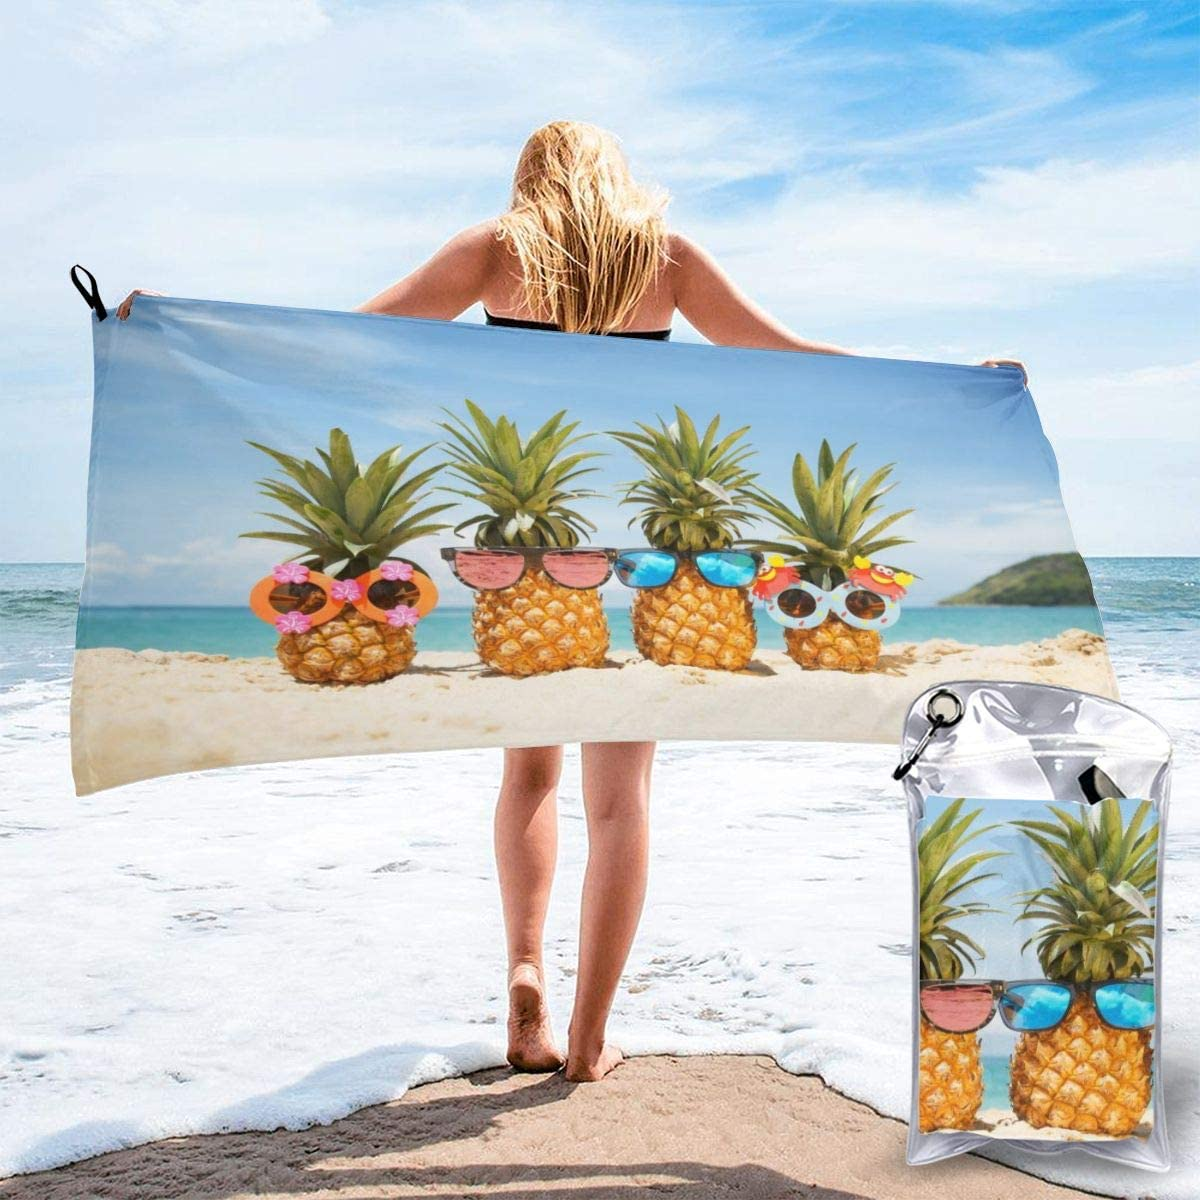 31.5 x 63 with a Carrying Bag Best Beach Towels for Swimmers Sports Travel Super Absorbent Camping Delerain Sea Turtles Microfiber Quick Dry Beach Towel Compact /& Lightweight Towel